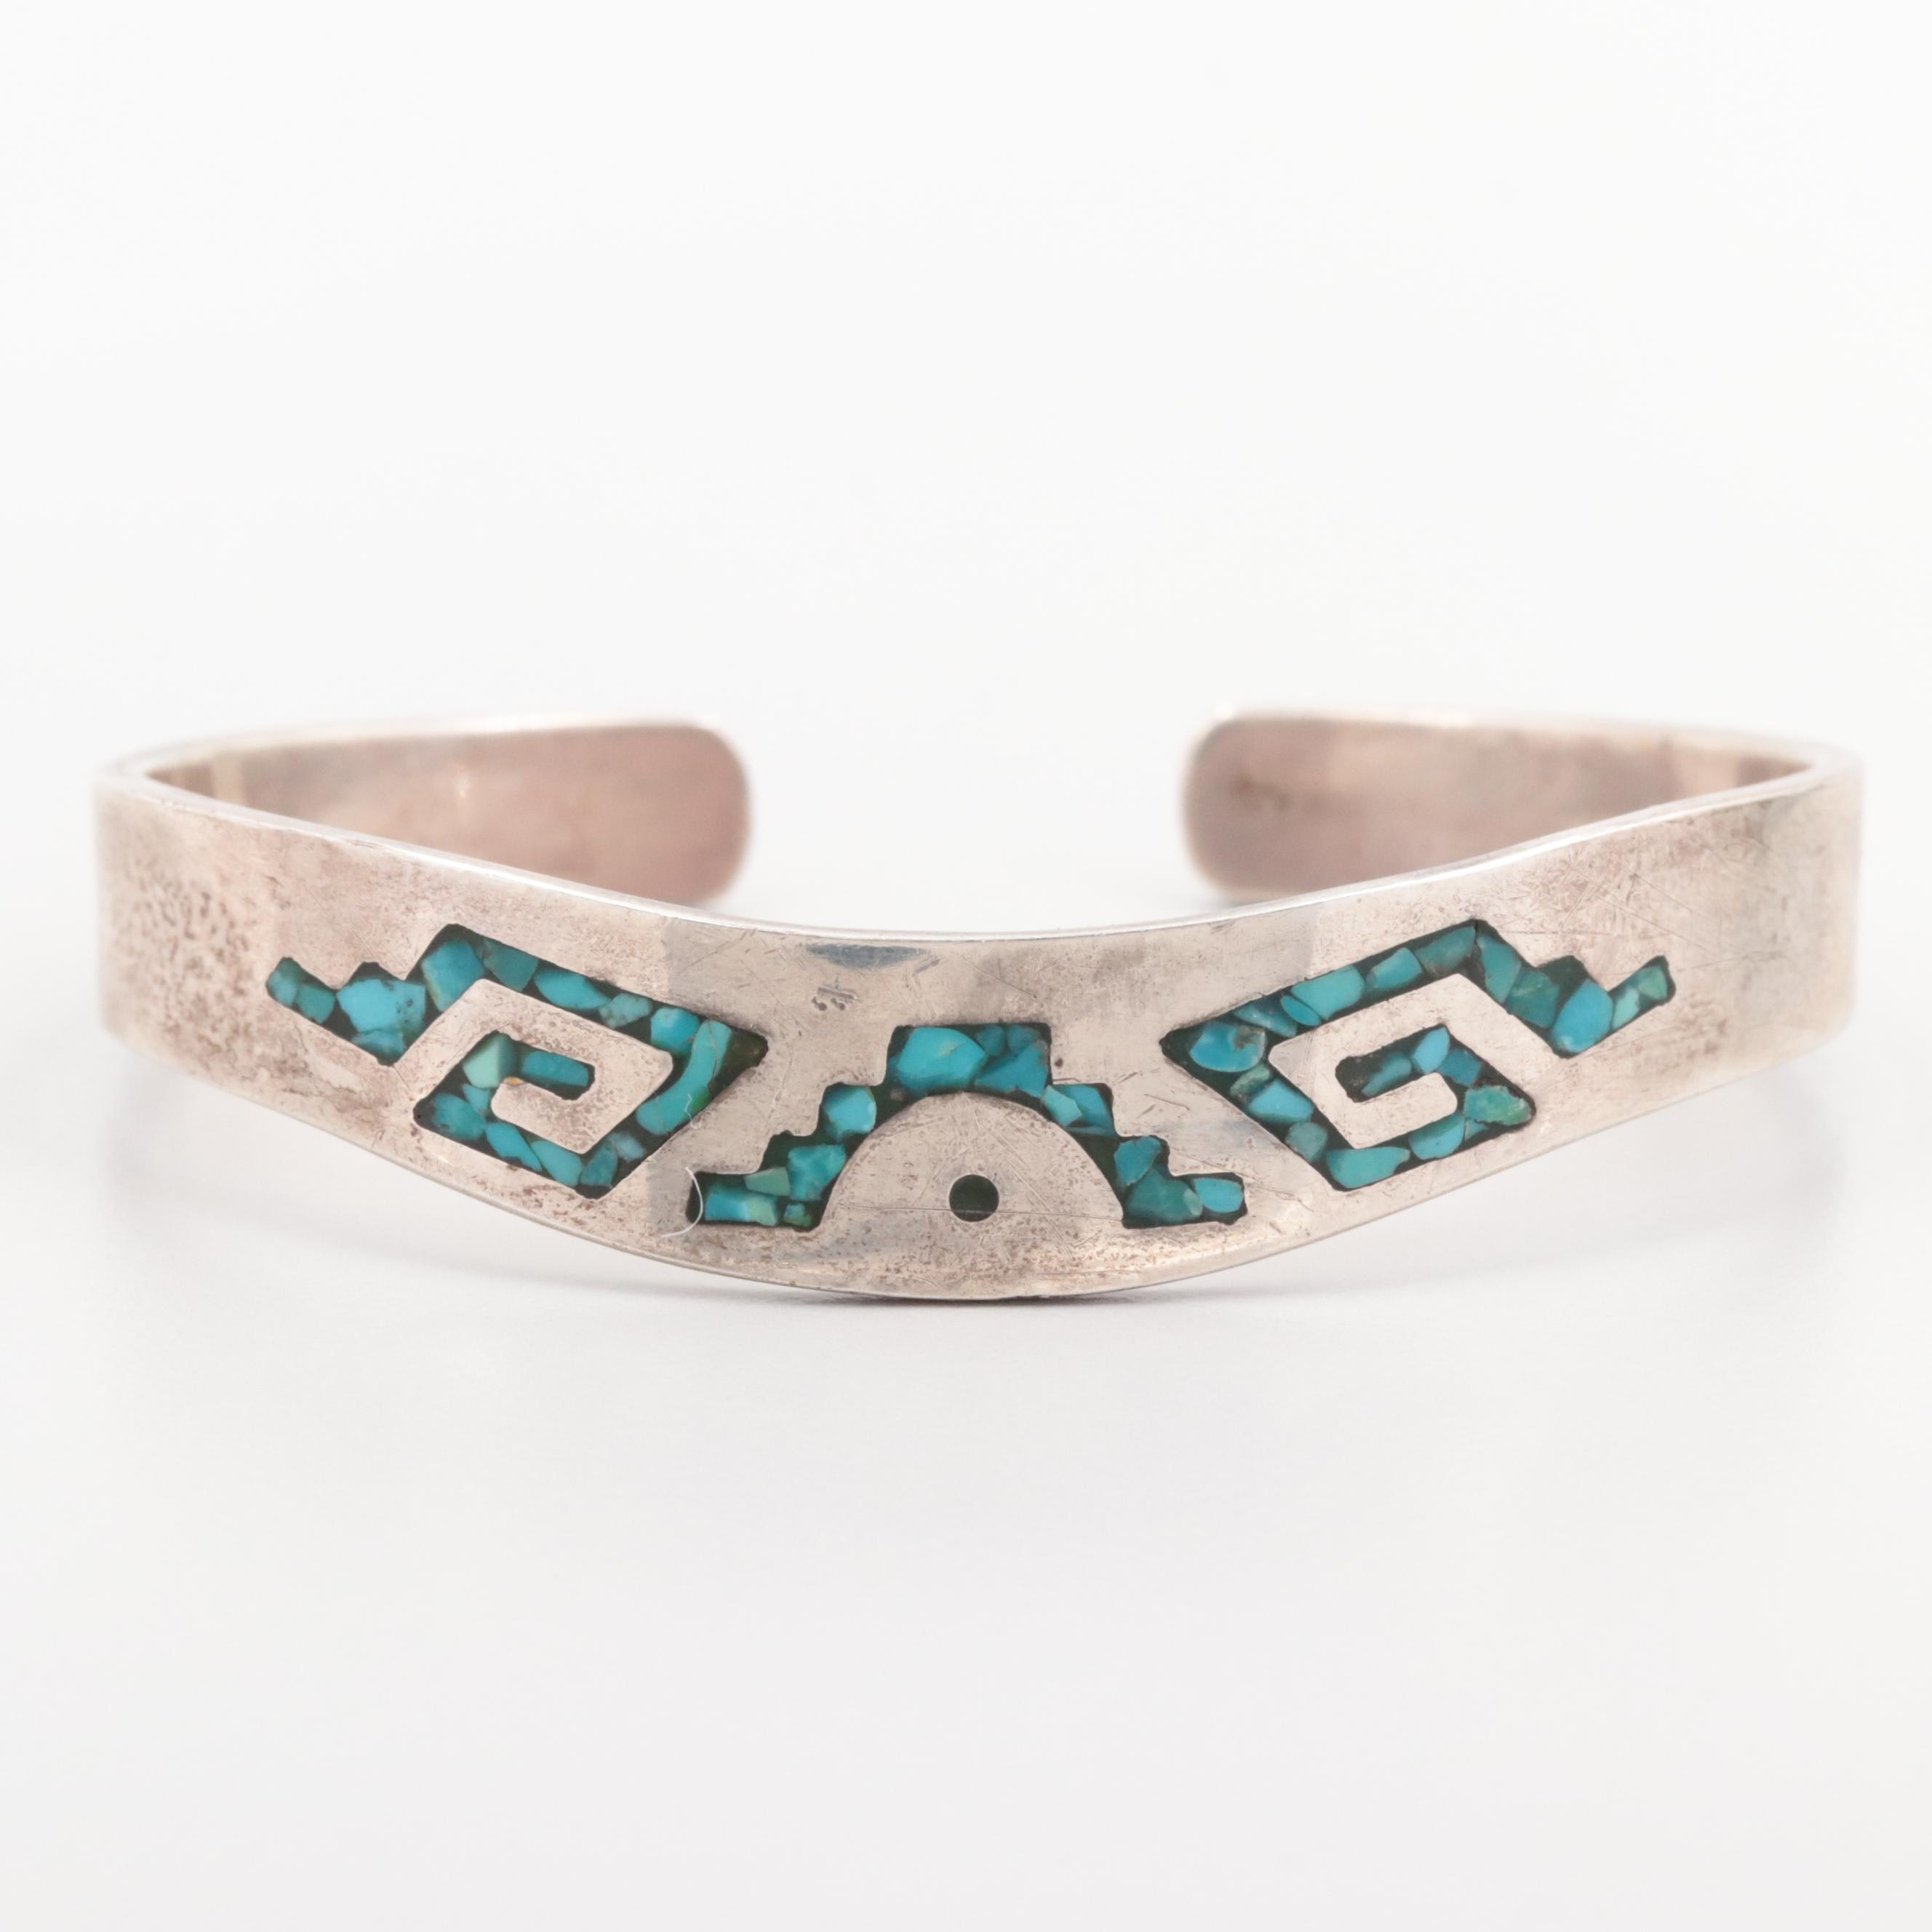 Mexican Sterling Silver Chipped Turquoise and Resin Inlay Cuff Bracelet